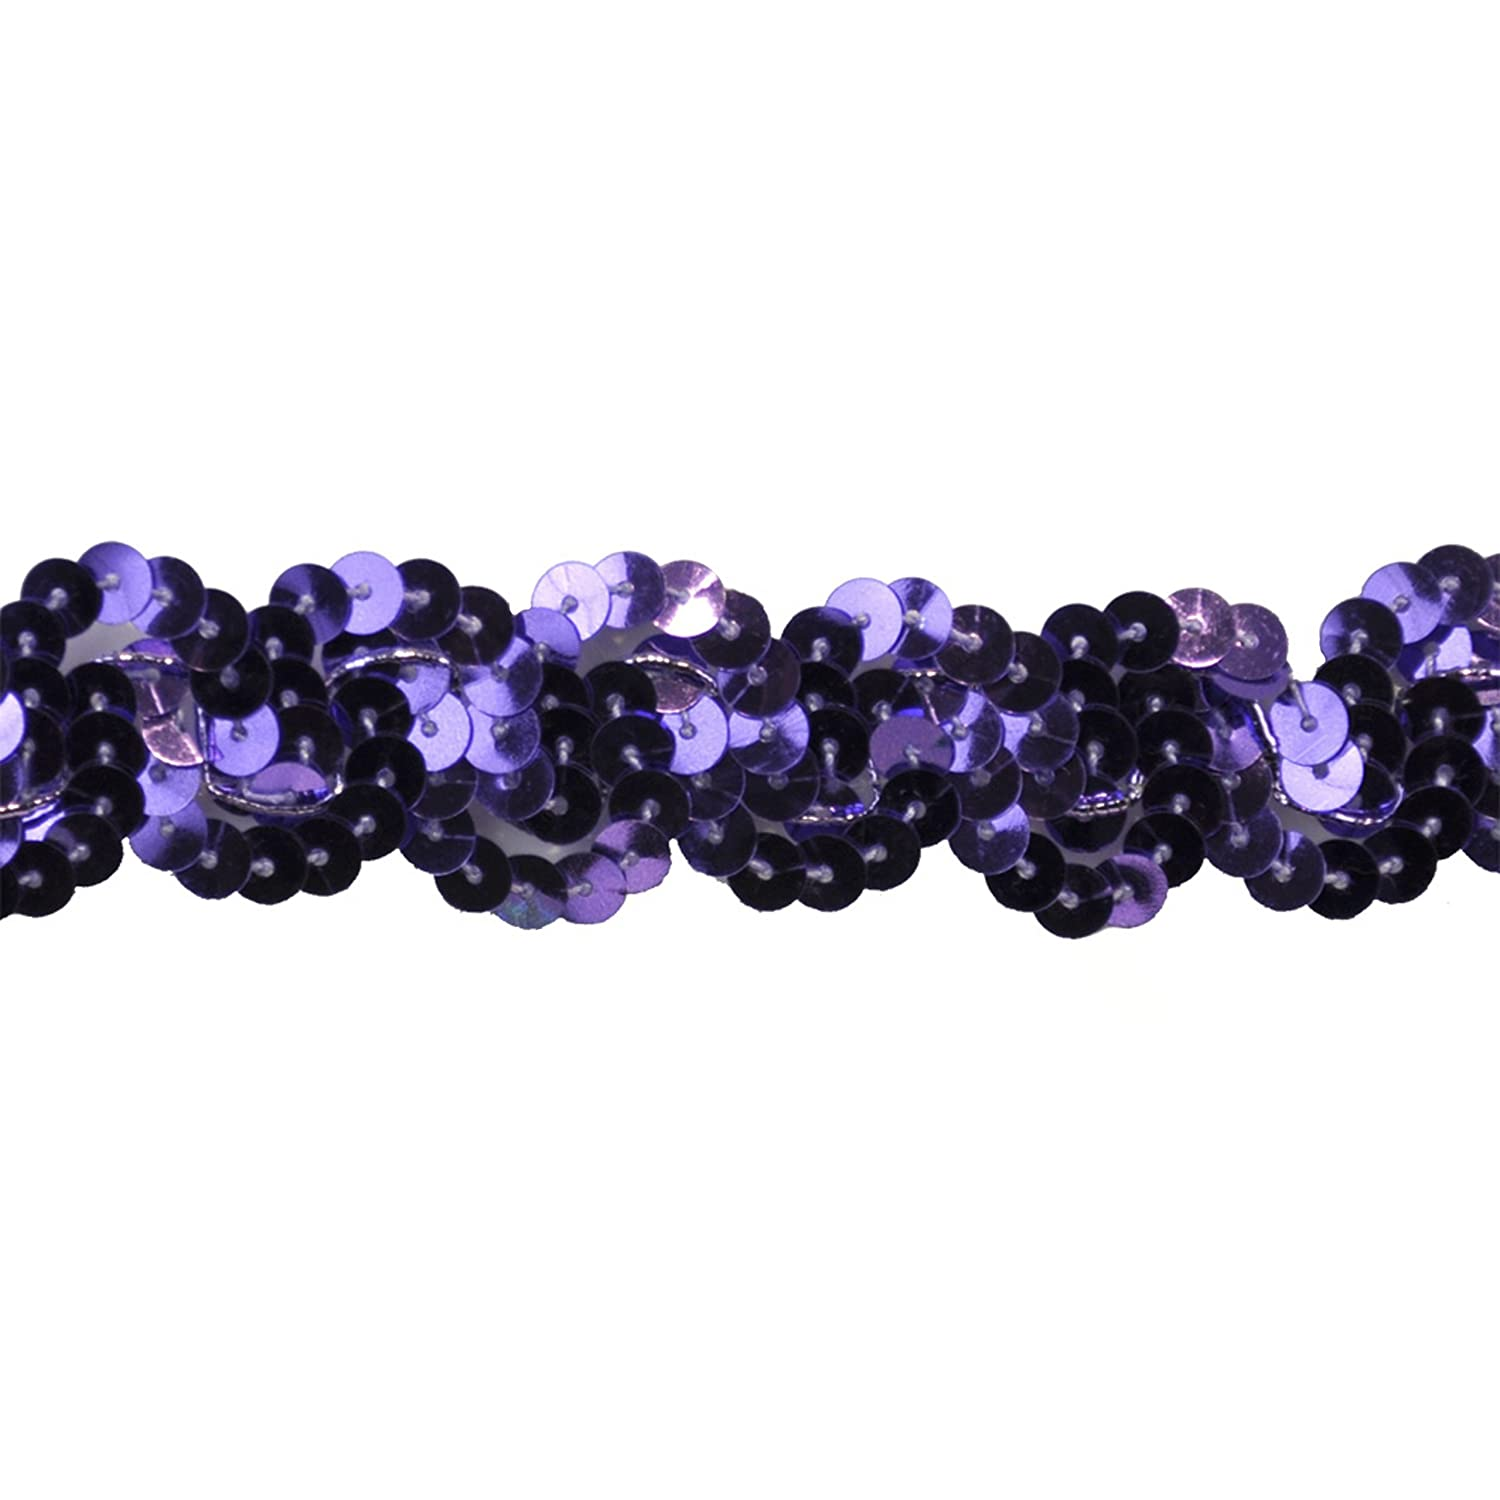 Sequin Trim 1-Inch Wide Polyester Non Stretch Rolls for Arts and Crafts Purple 10-Yard